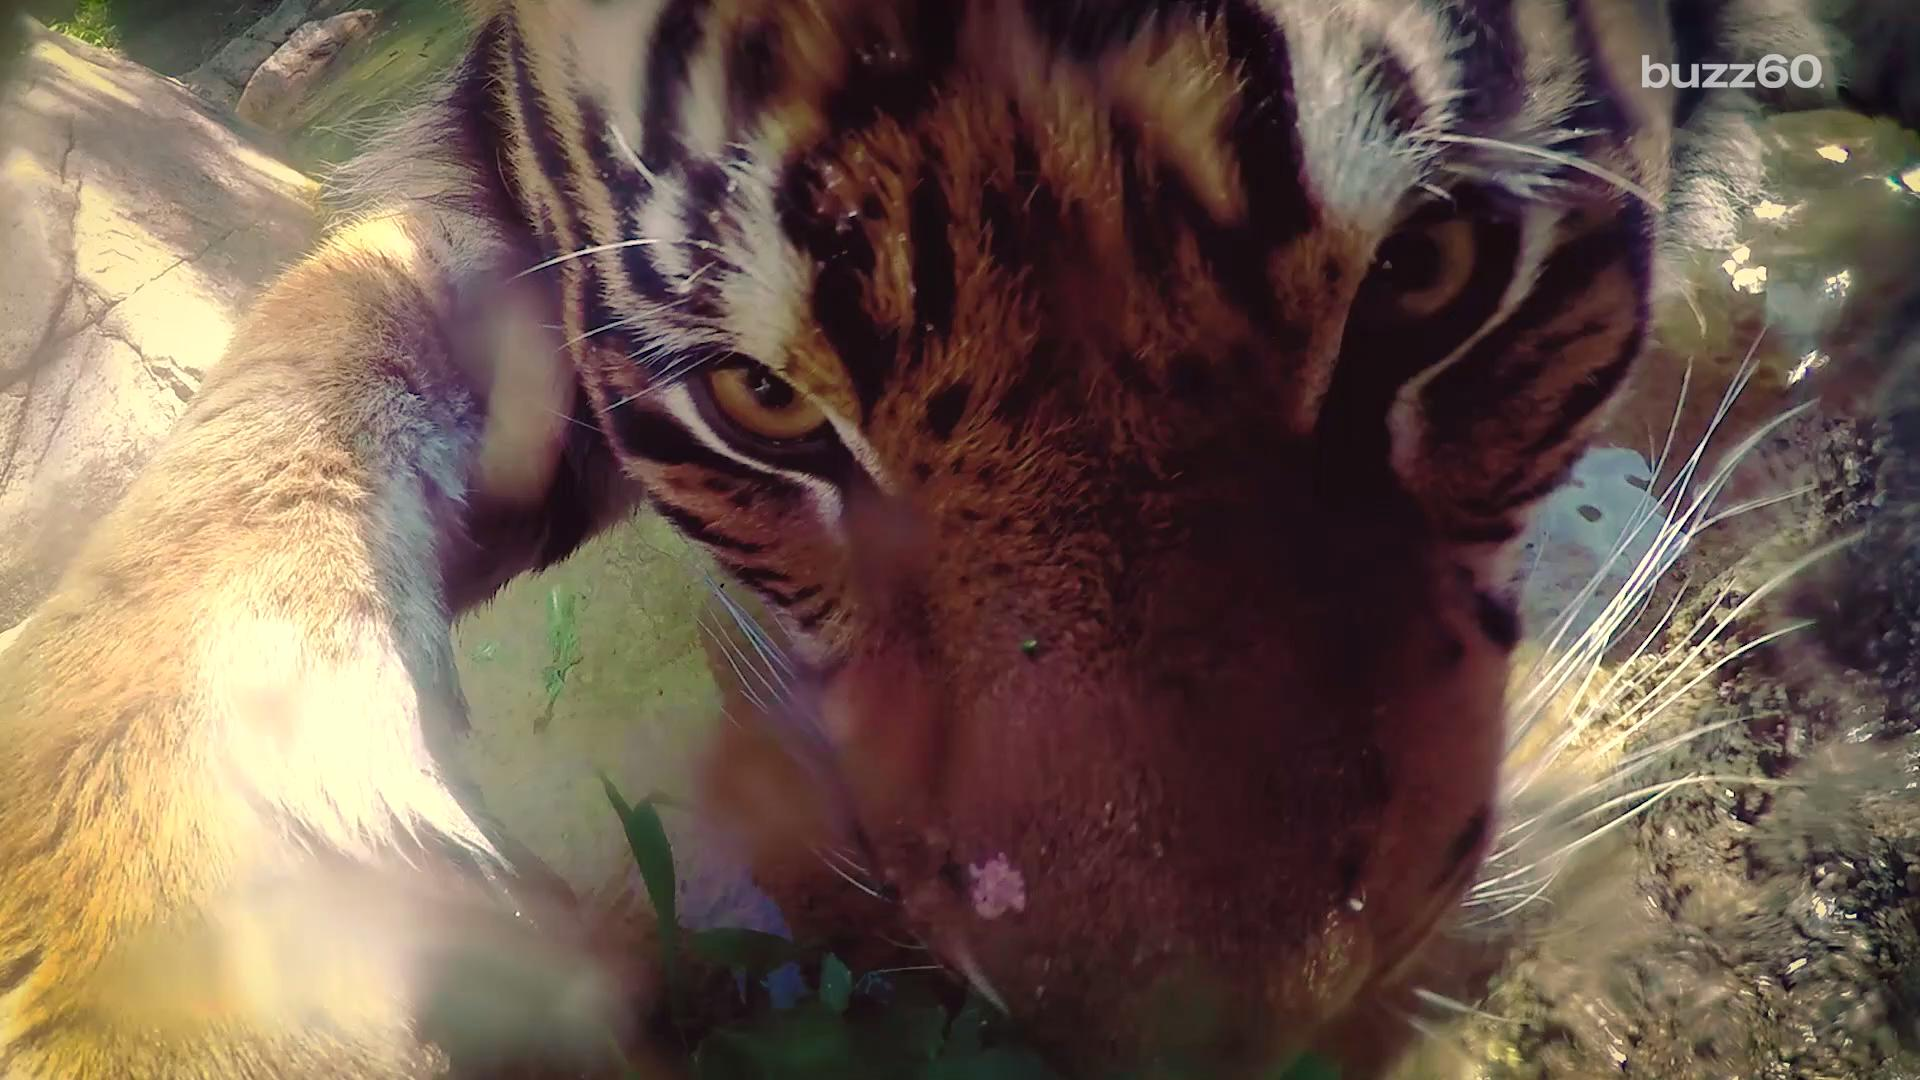 Google Sets Up Cameras for Animal Selfies at Los Angeles Zoo